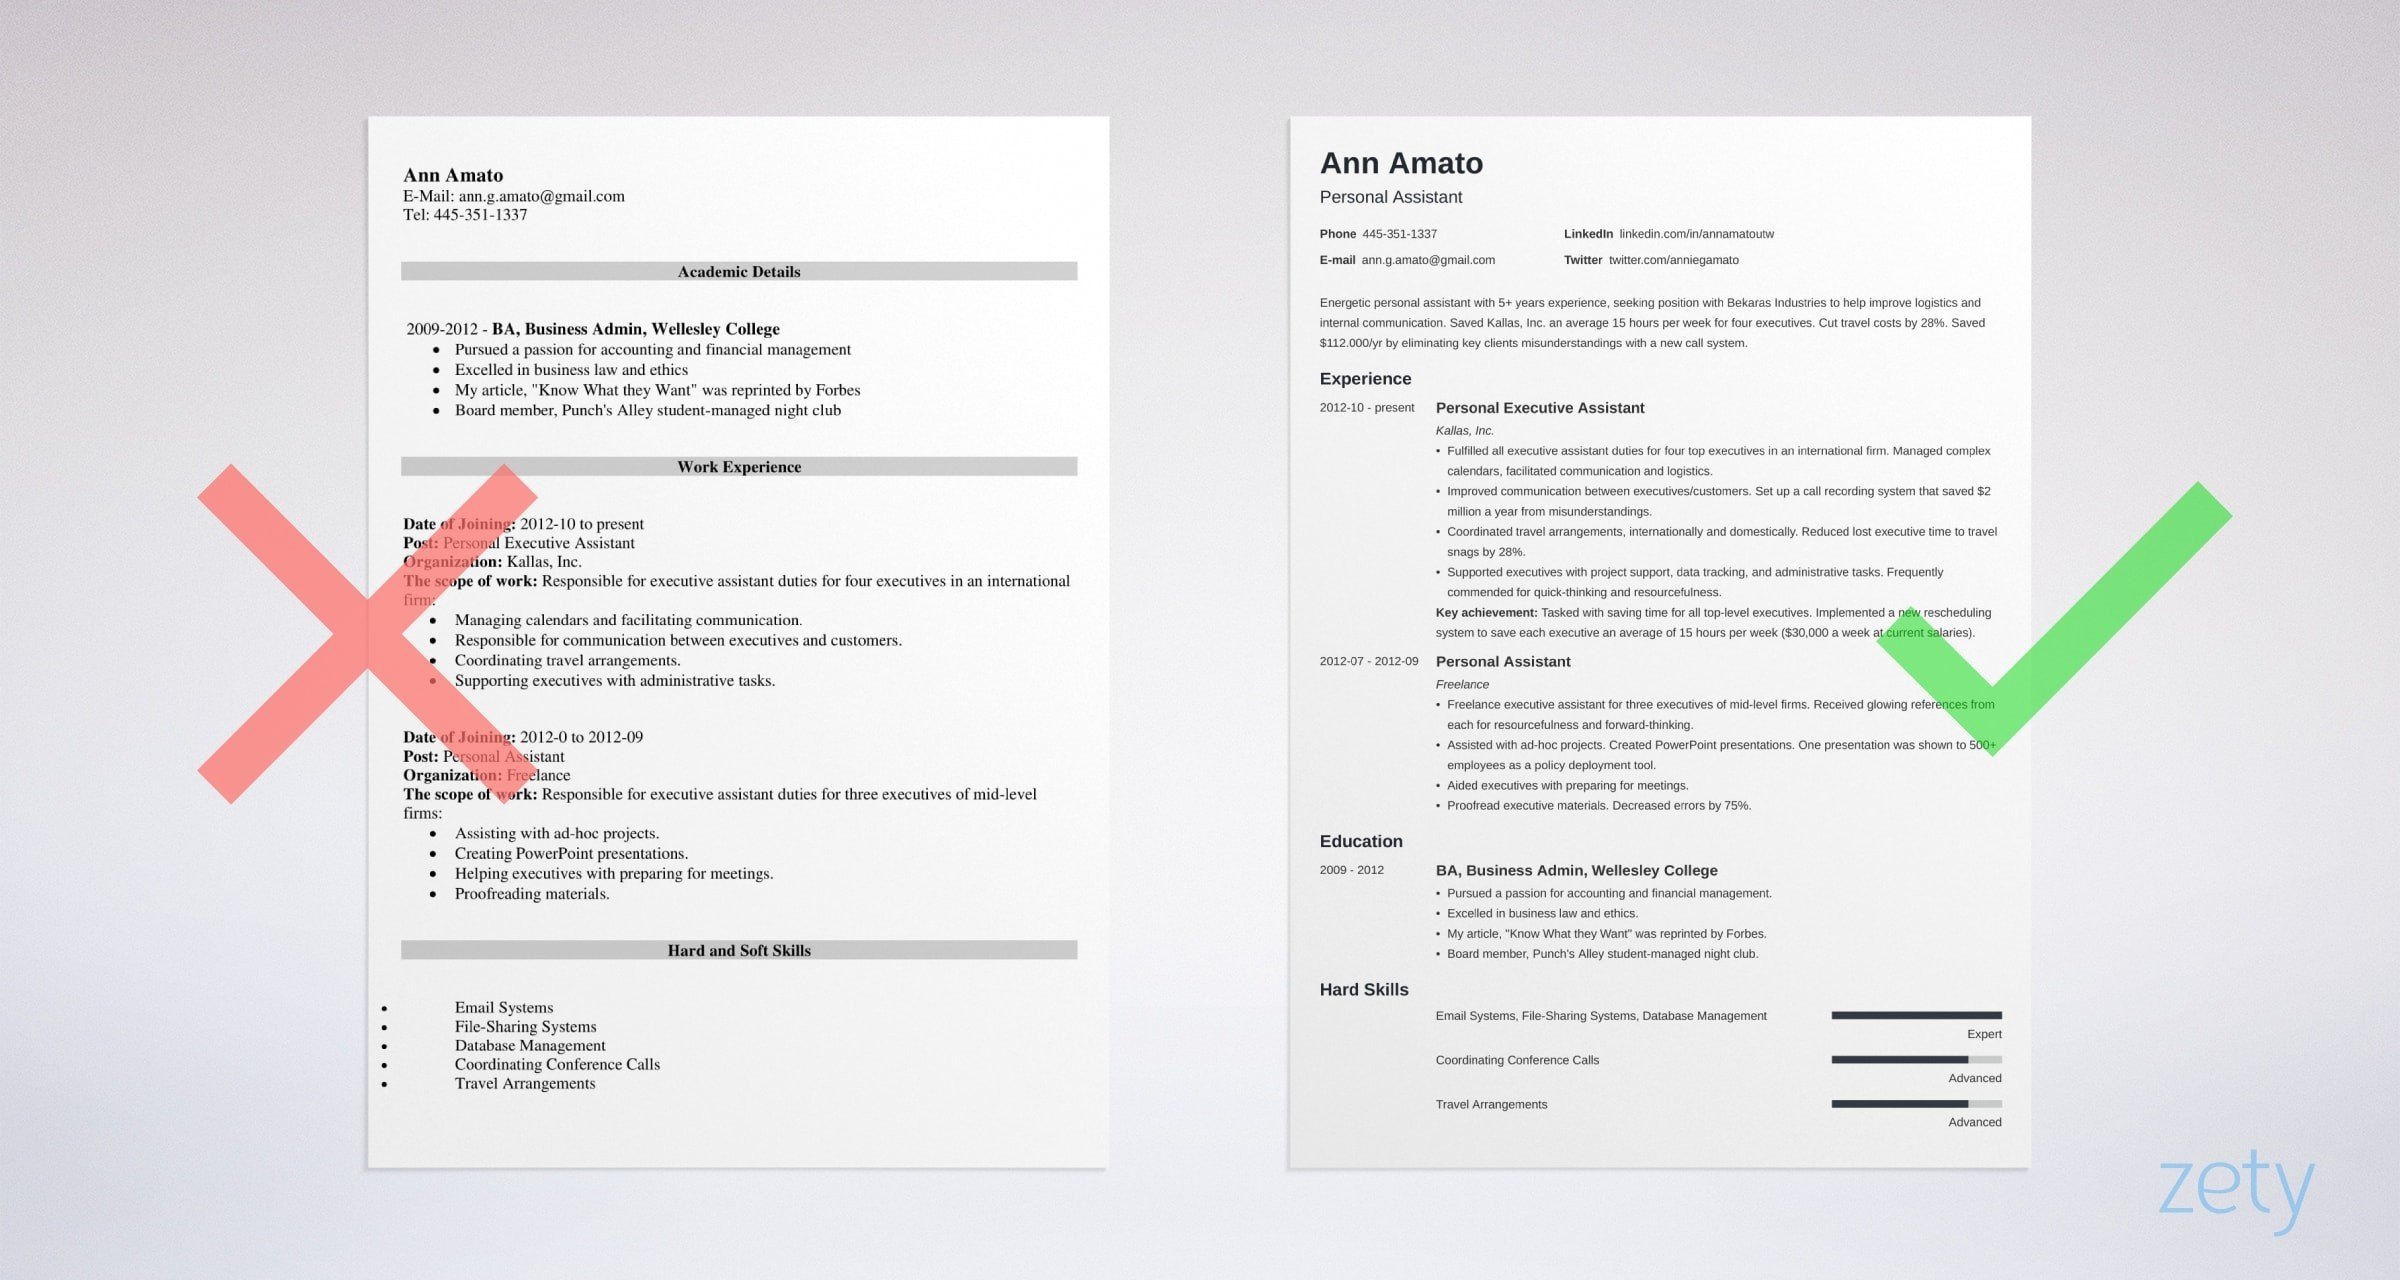 best resume format professional samples simple full formats med surg example probation Resume Simple Full Resume Format